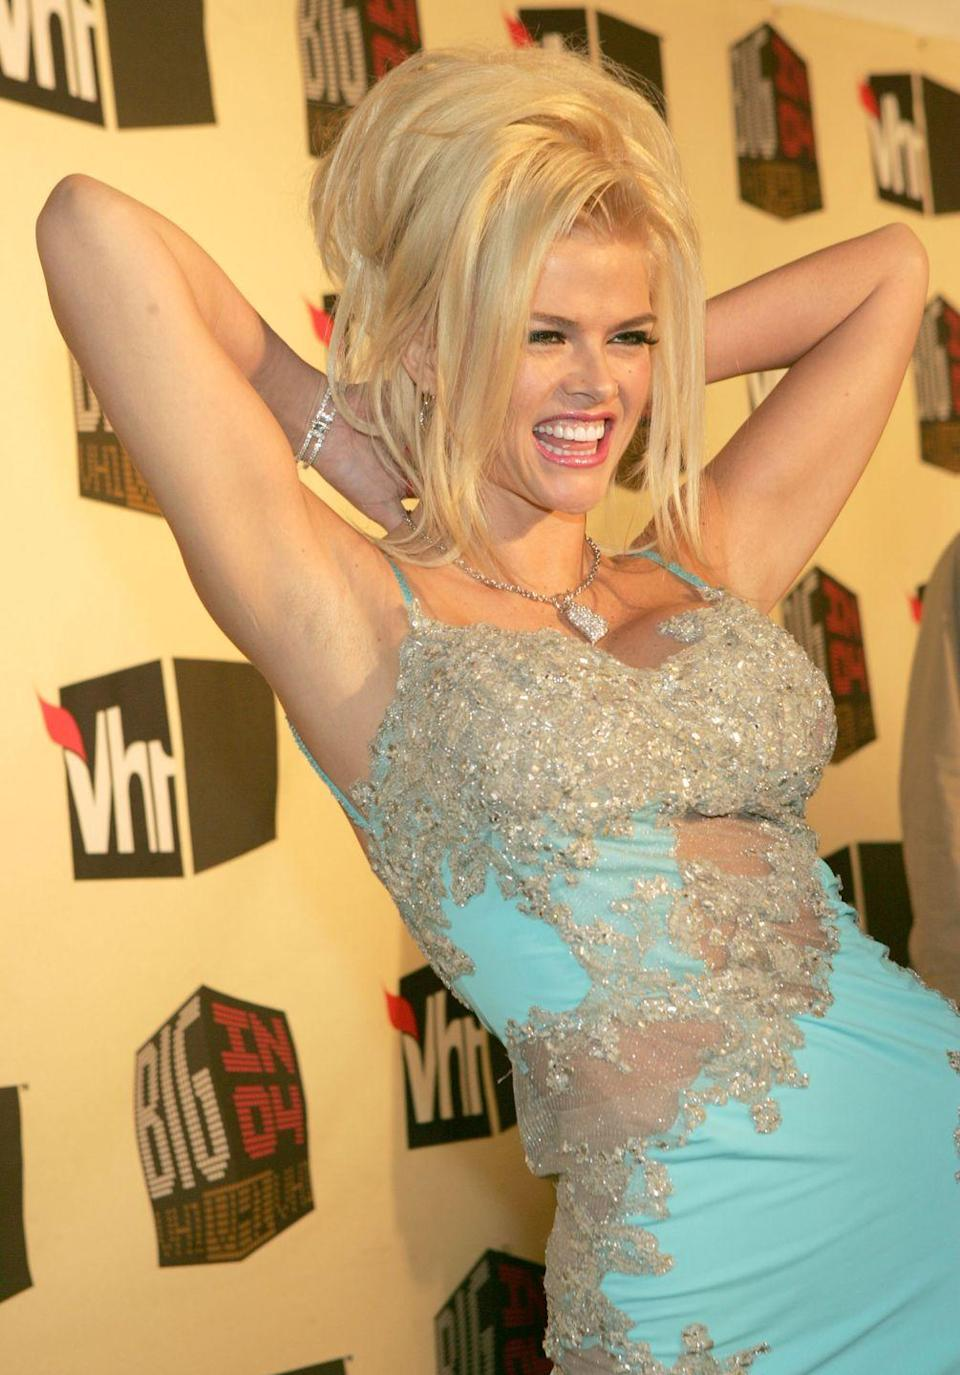 <p>The legendary Anna Nicole Smith—aka the star of <em>The</em> <em>Anna Nicole Smith Show</em> on E! for three seasons—dressed in teal sequined dazzle, playfully poses on Vh1's red carpet. </p>